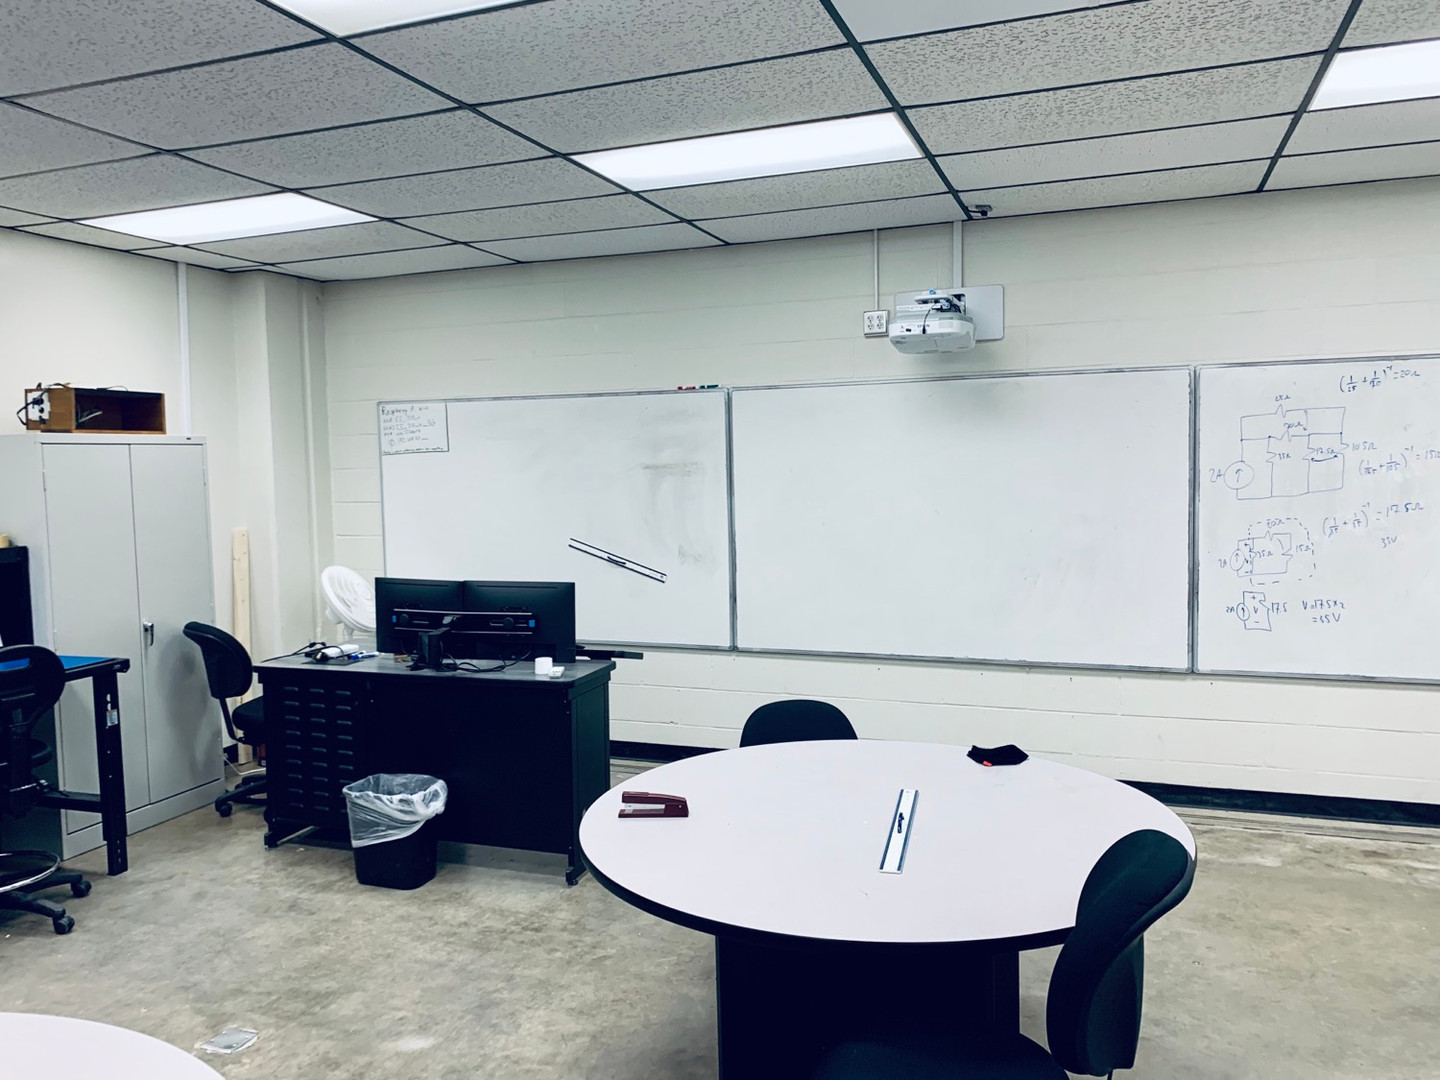 Technology in a Classroom